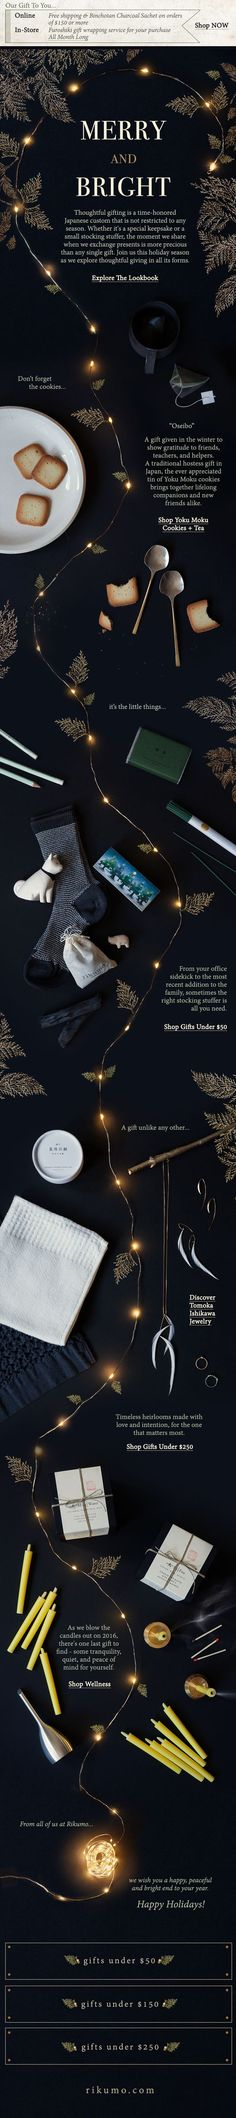 Here's 15 examples of great holiday email designs from brands that are totally nailing the holiday campaign game. Get inspired for your next email campaign. E-mail Design, Layout Design, Web Layout, Graphic Design, Email Marketing Campaign, Marketing Ideas, Holiday Emails, Email Layout, Handwritten Type